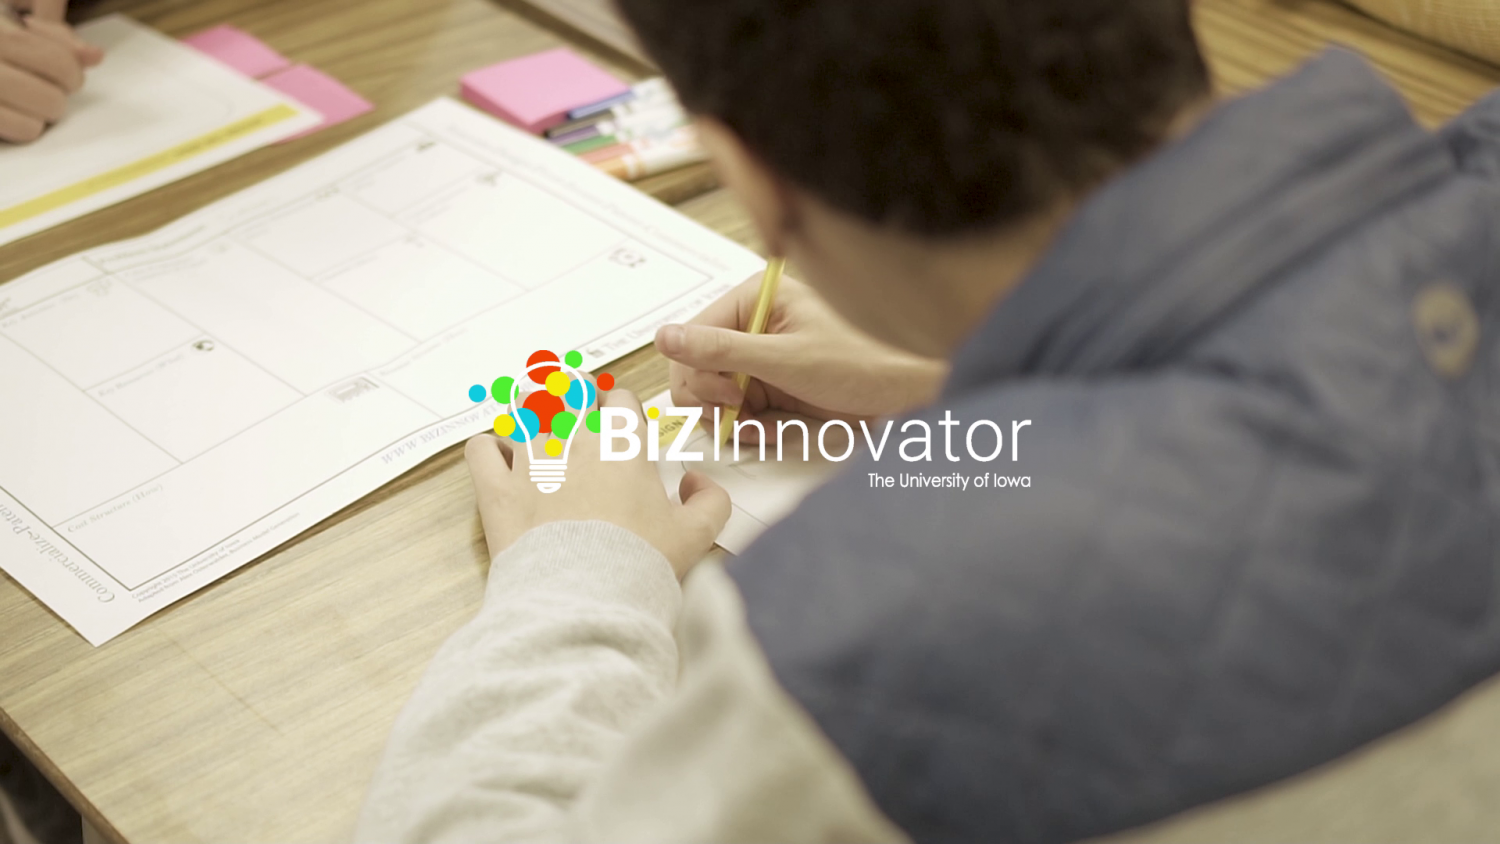 BizInnovator video